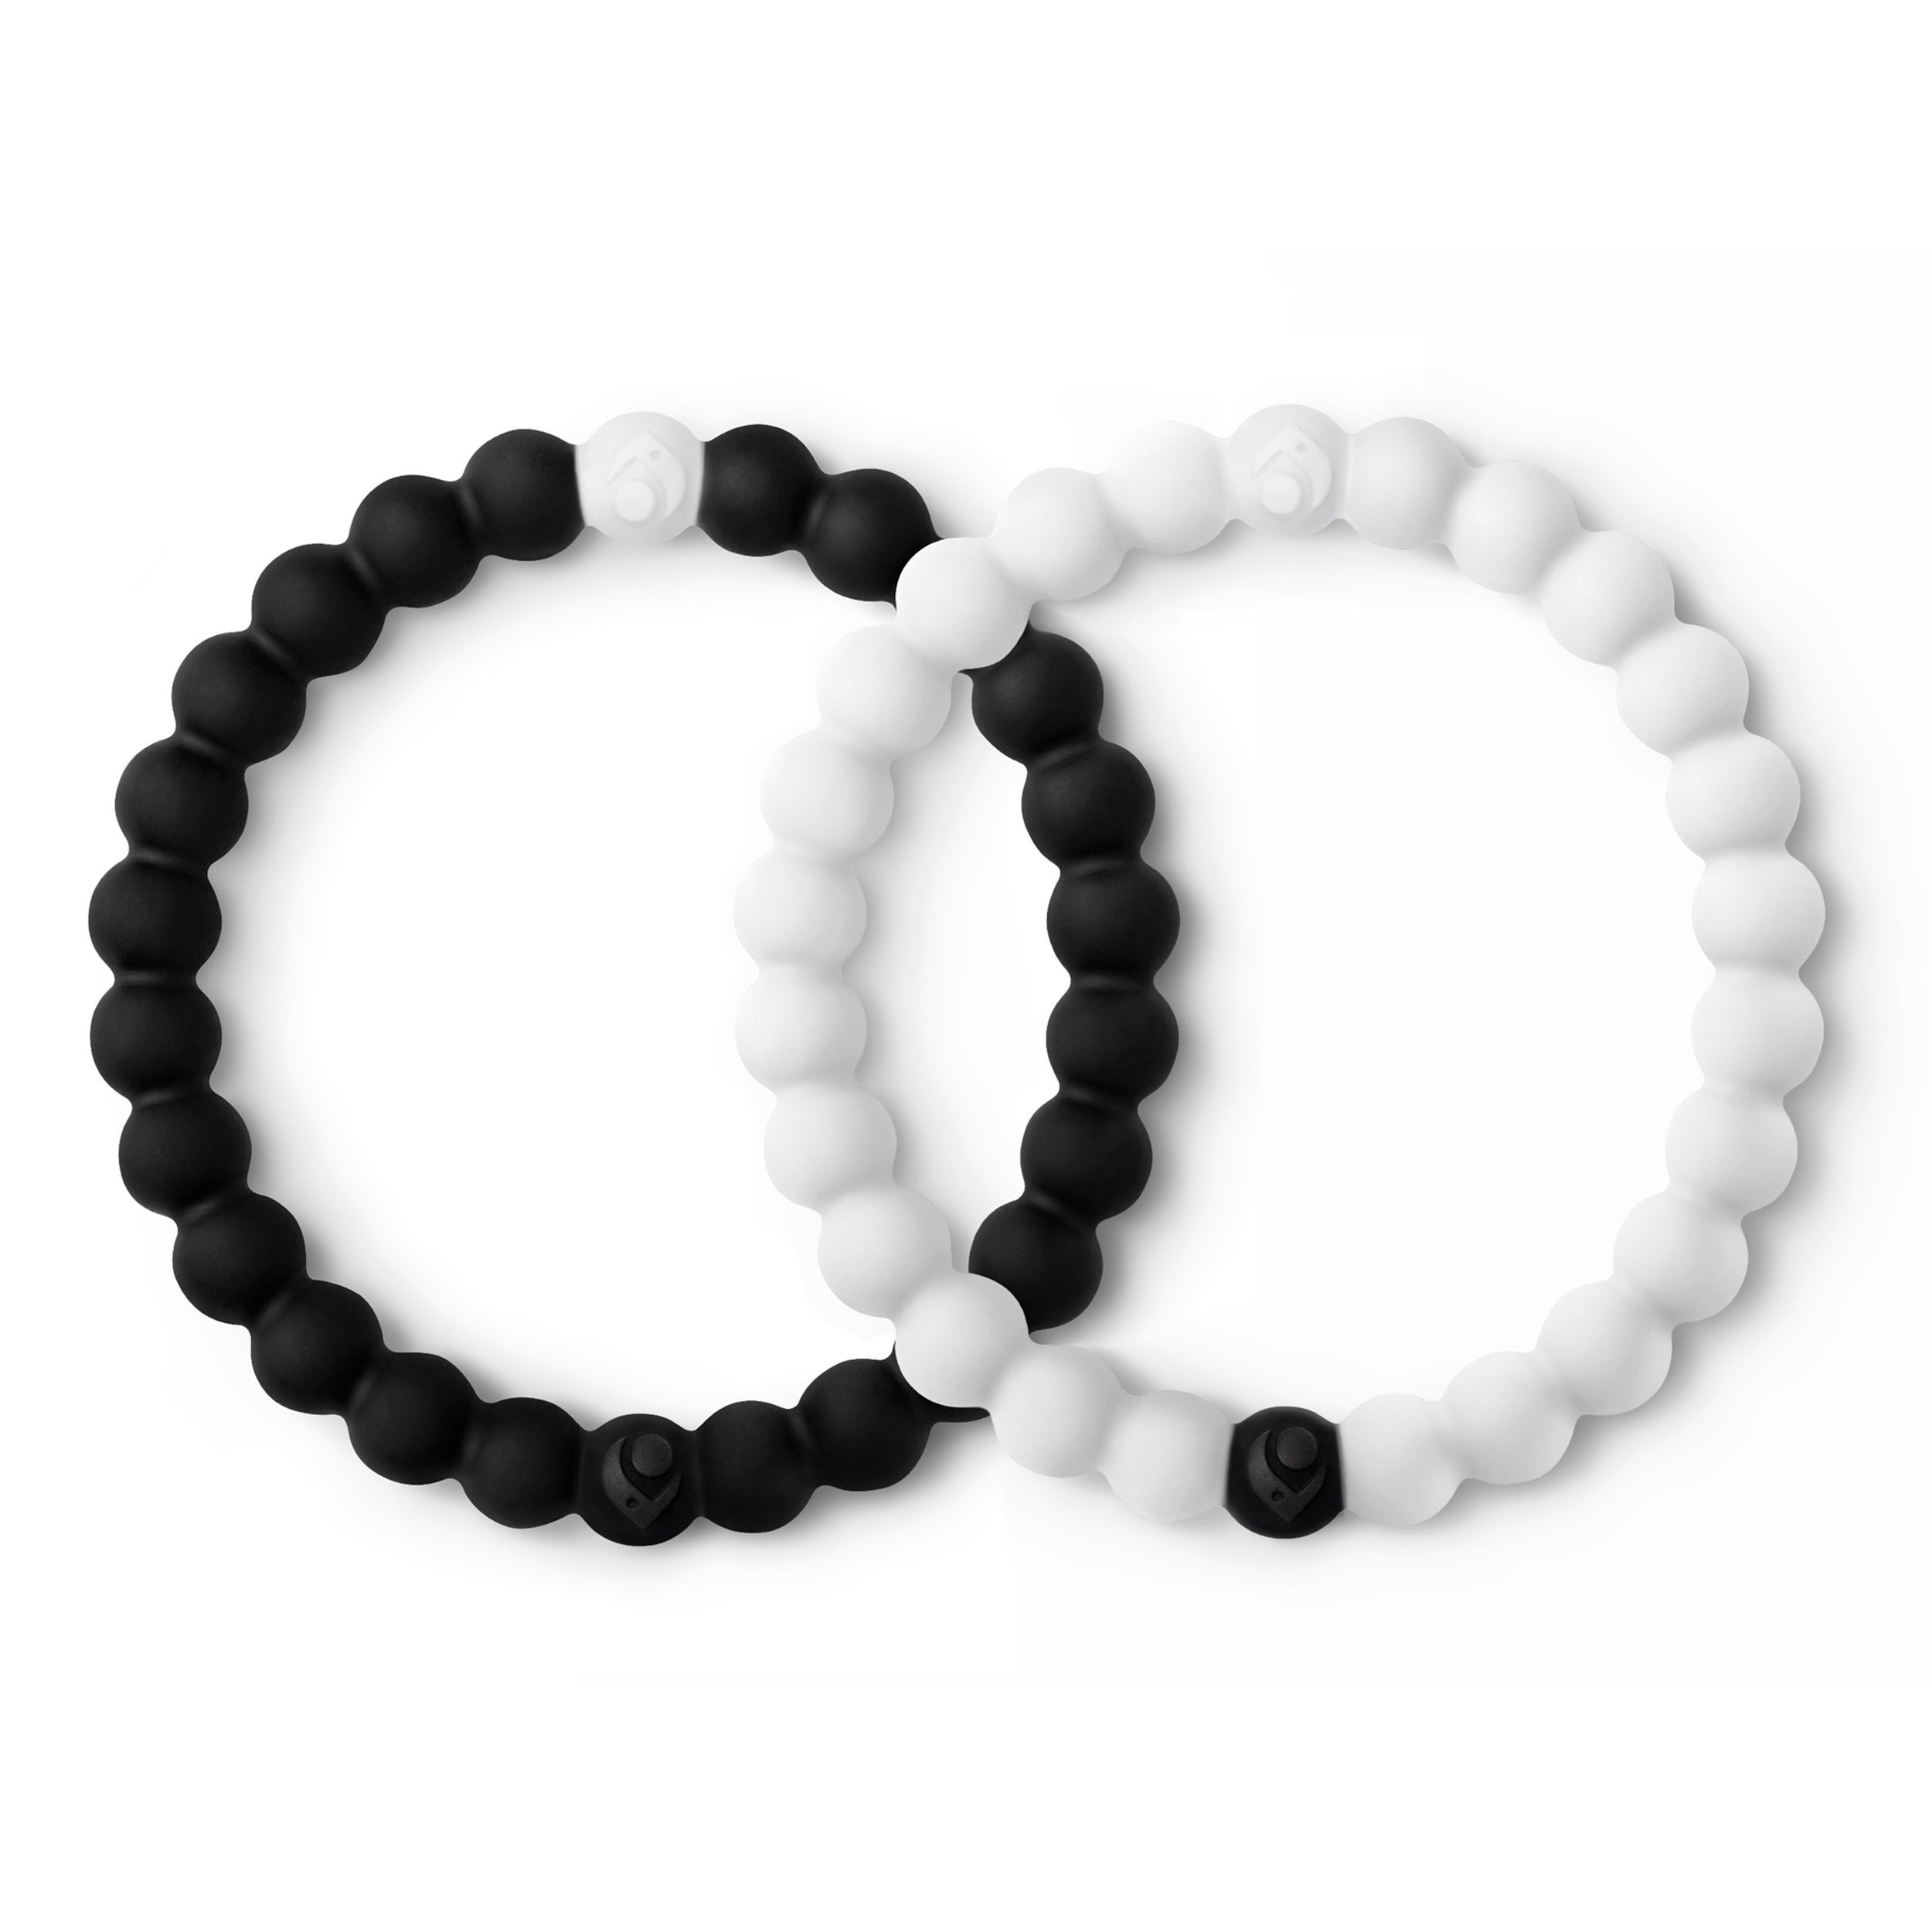 Lokai Black & White Bracelet Set, 6.5'' – Medium